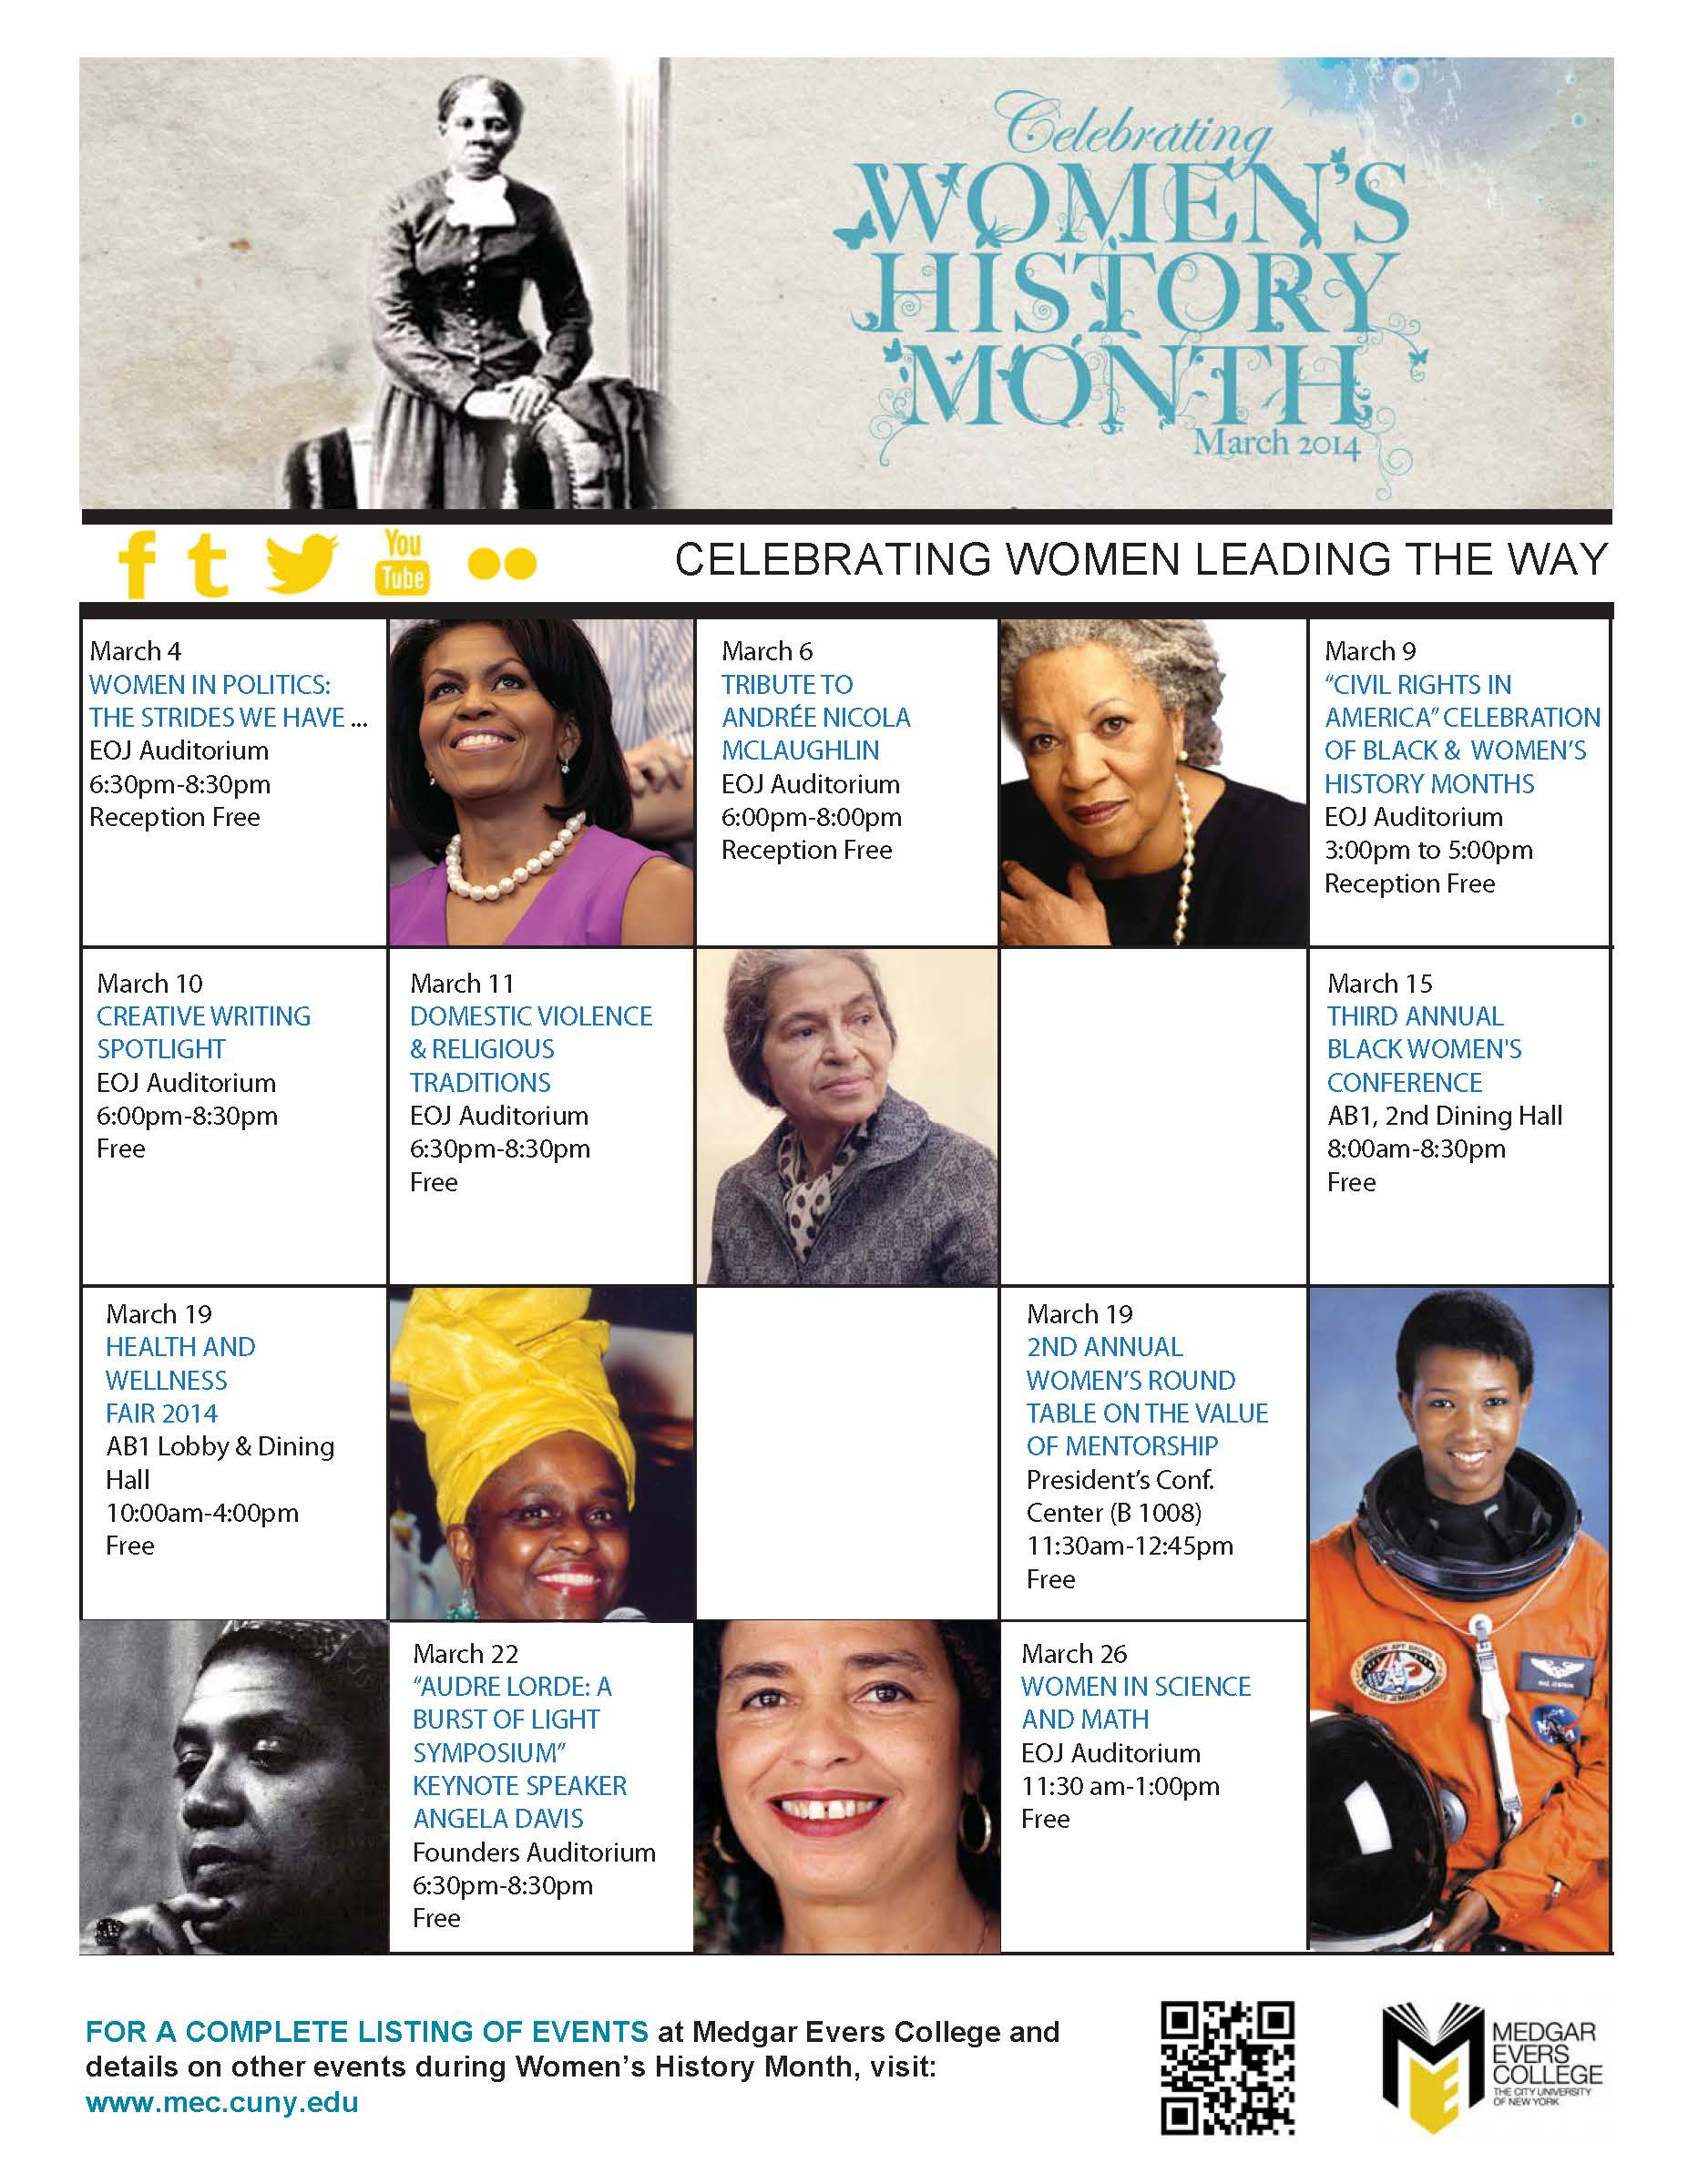 the event of womens history month Miami university regionals are sponsoring a number of events for women's history month.